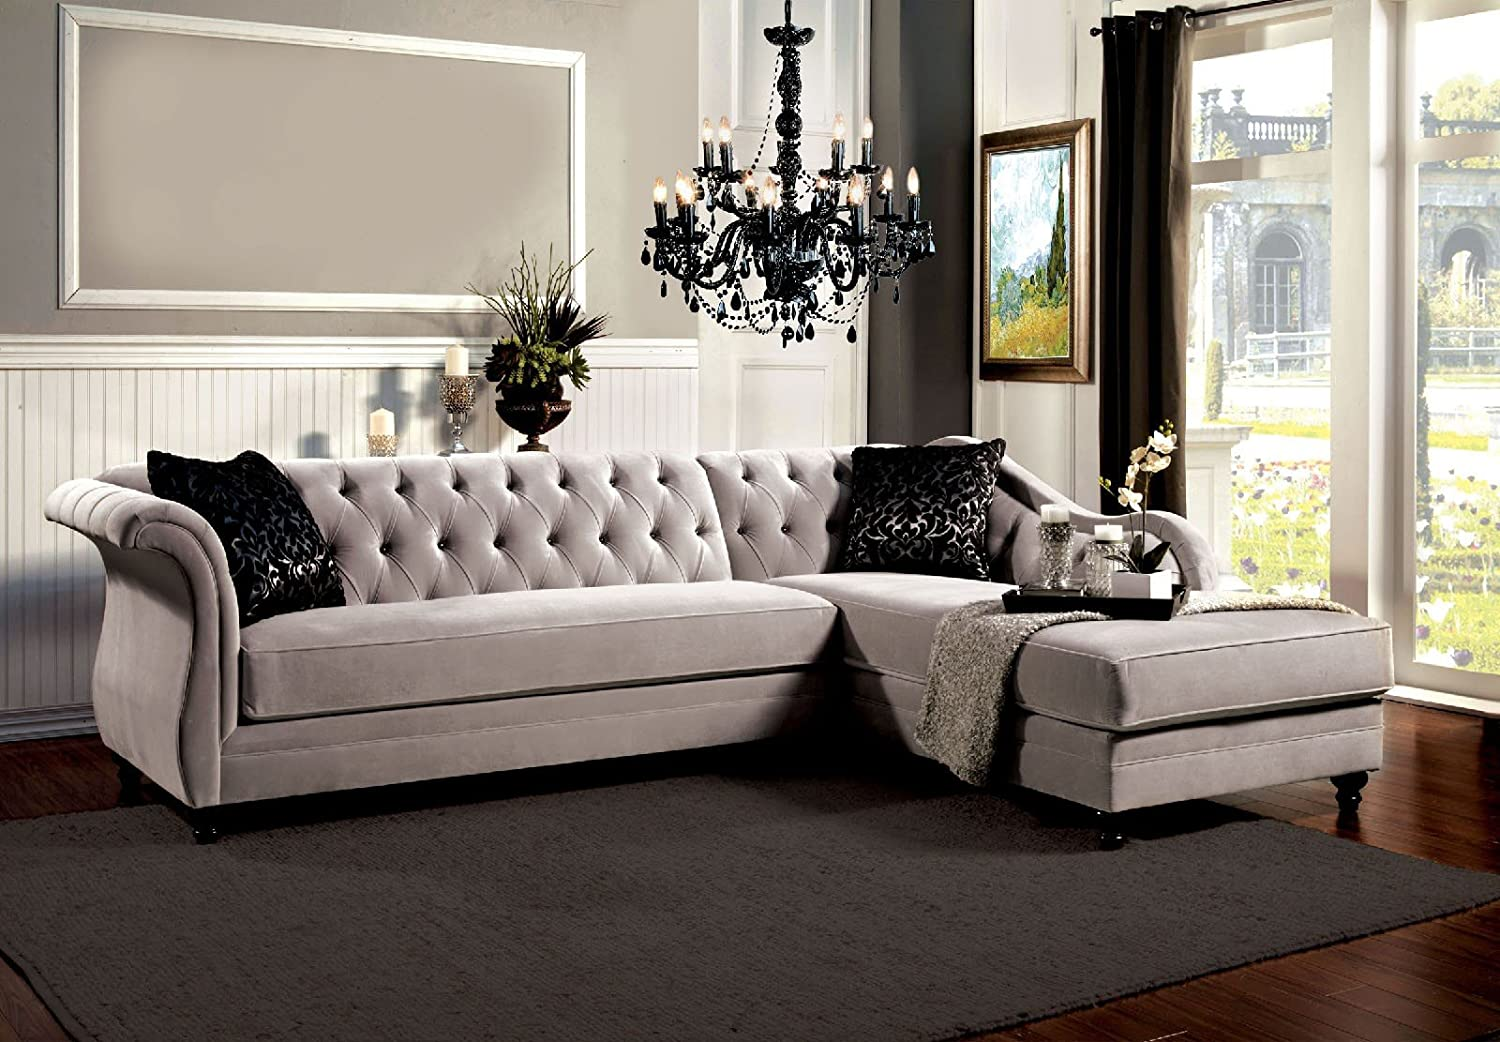 Prime Amazon Com Esofastore Traditional French Style Sectional Evergreenethics Interior Chair Design Evergreenethicsorg